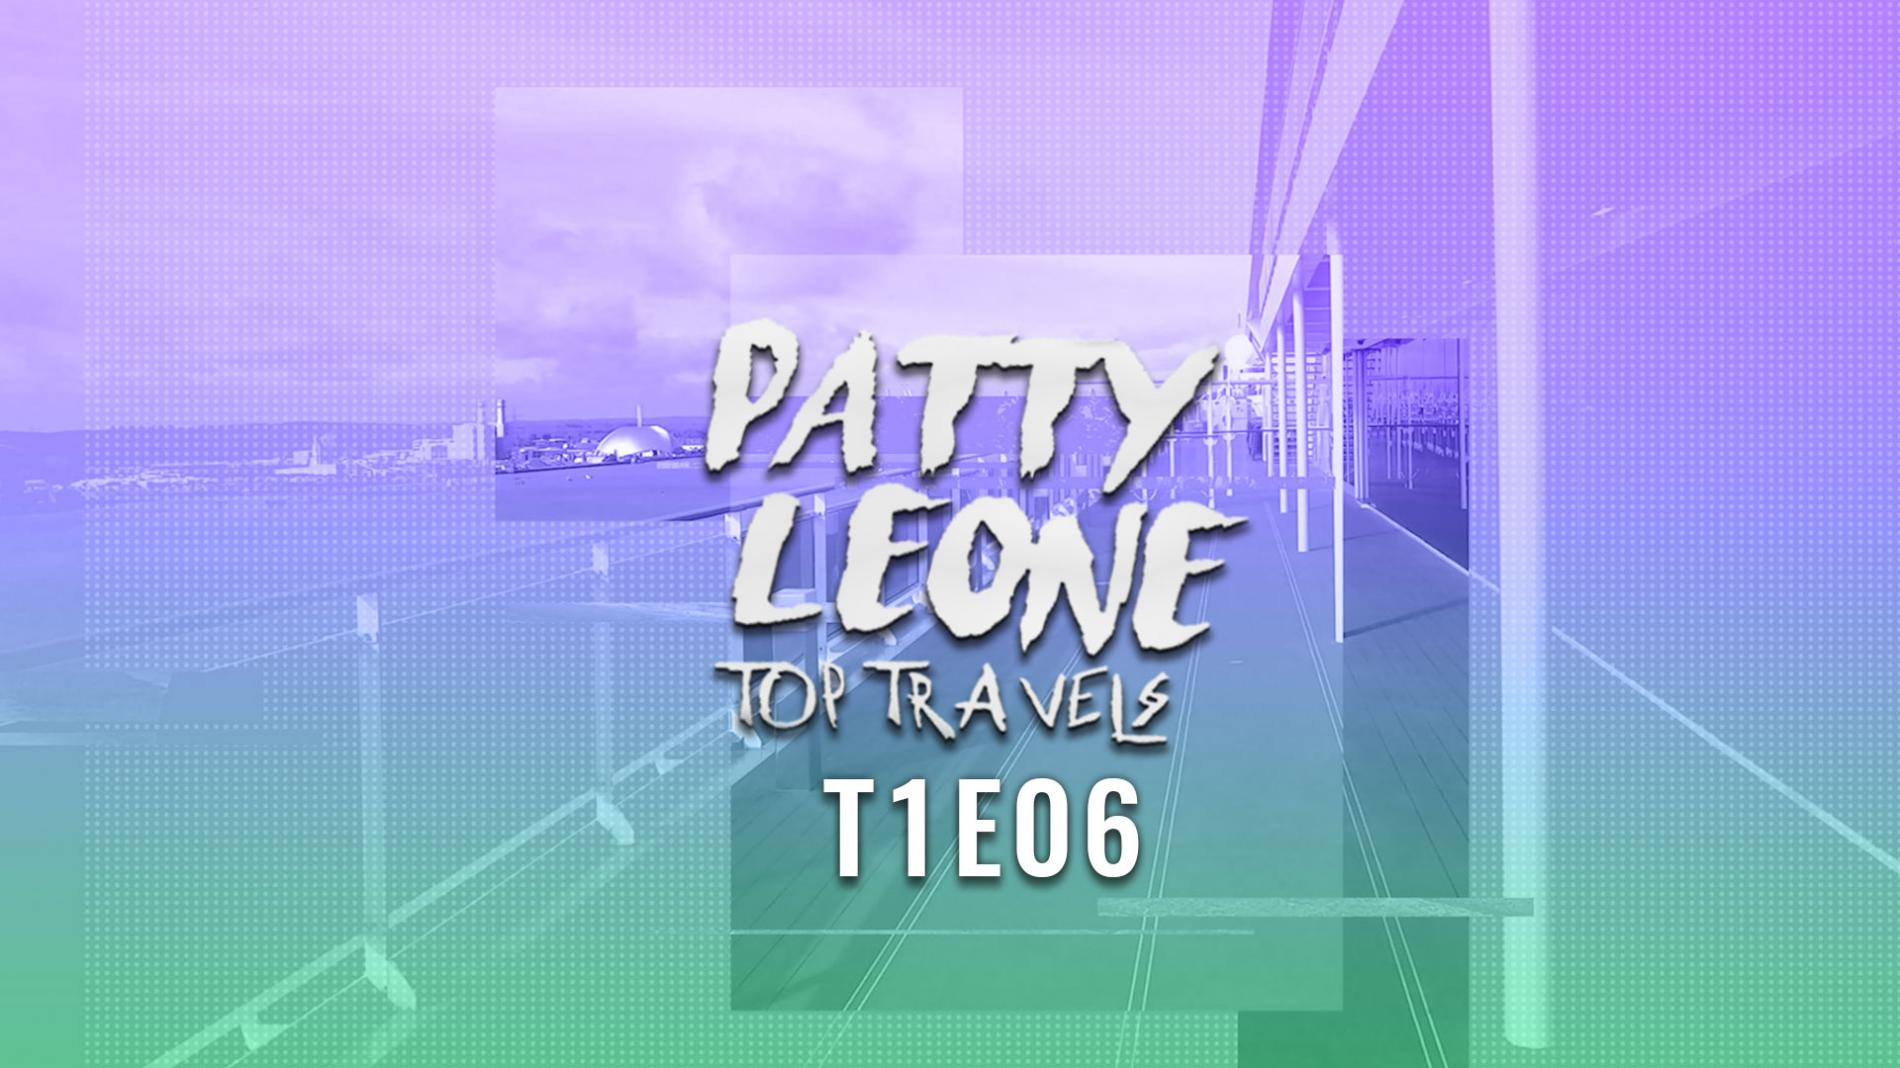 Patty Leone Top Travels - Temporada T01 - Episódio E06